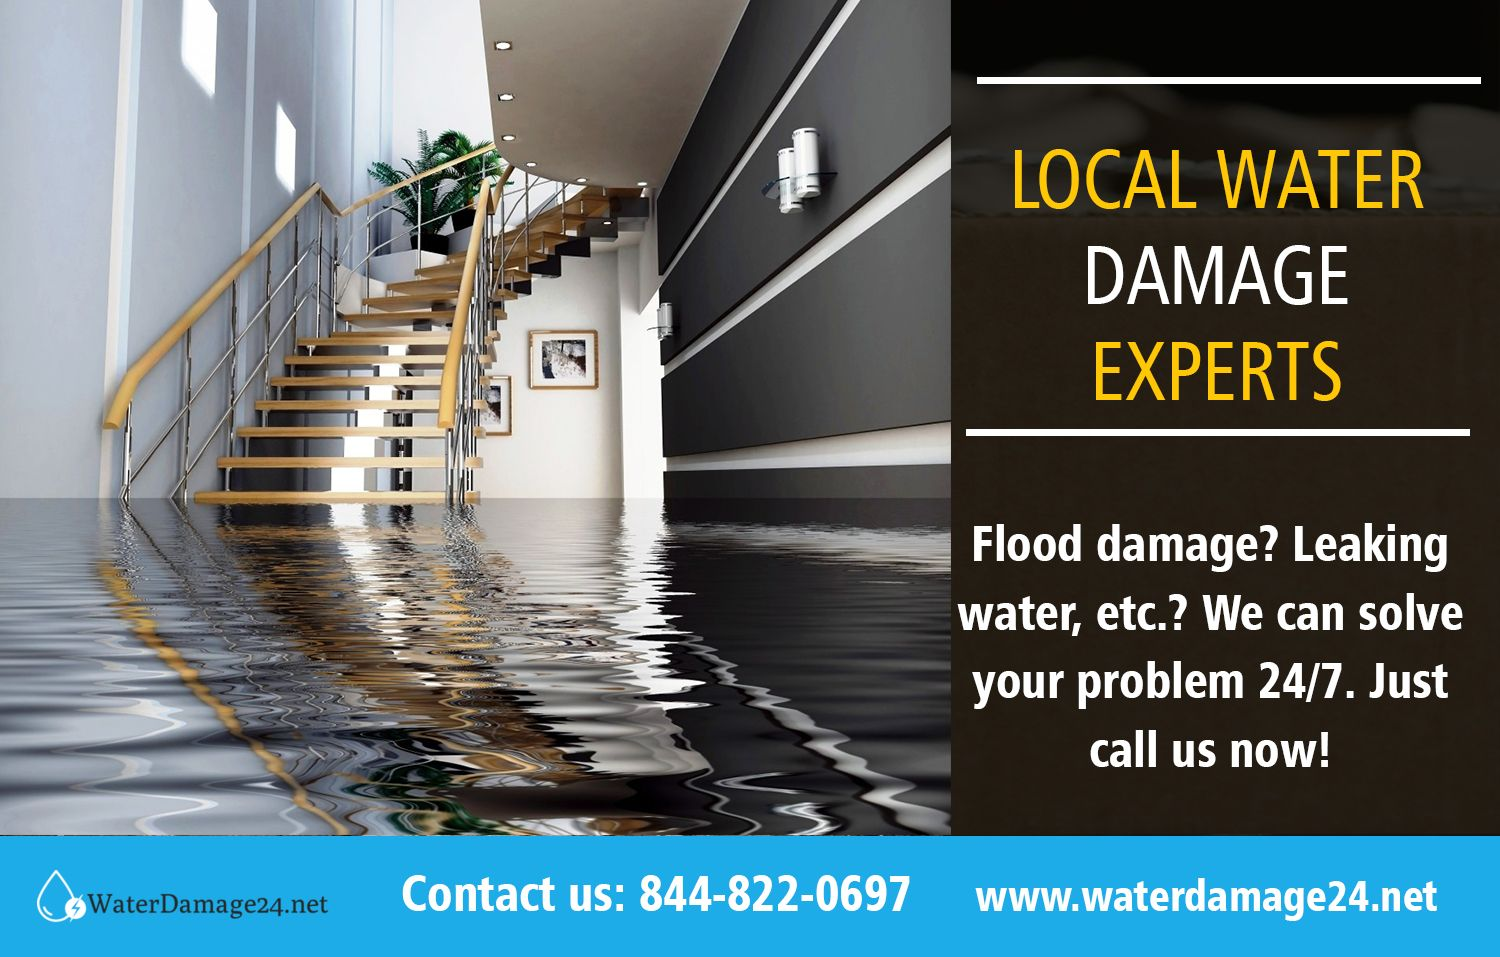 Local water damage experts call 8552028632